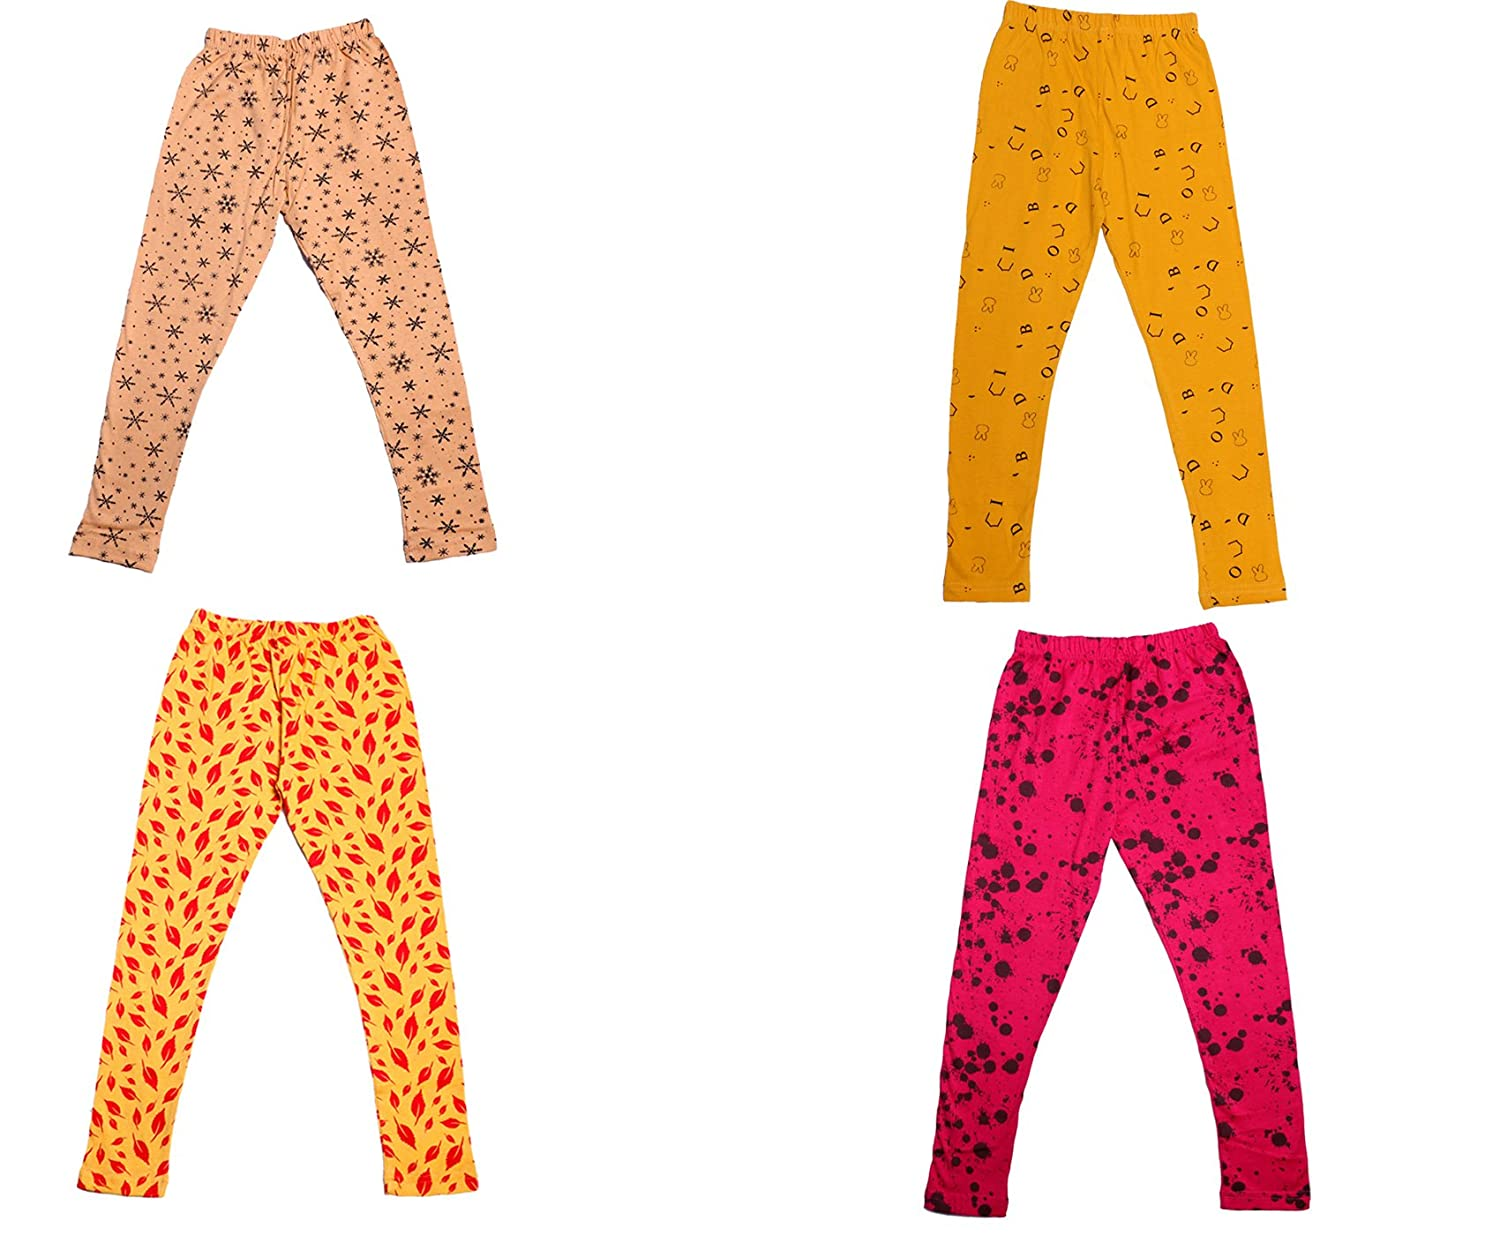 Indistar Girls Super Soft and Stylish Cotton Printed Legging Pants Pack of 4